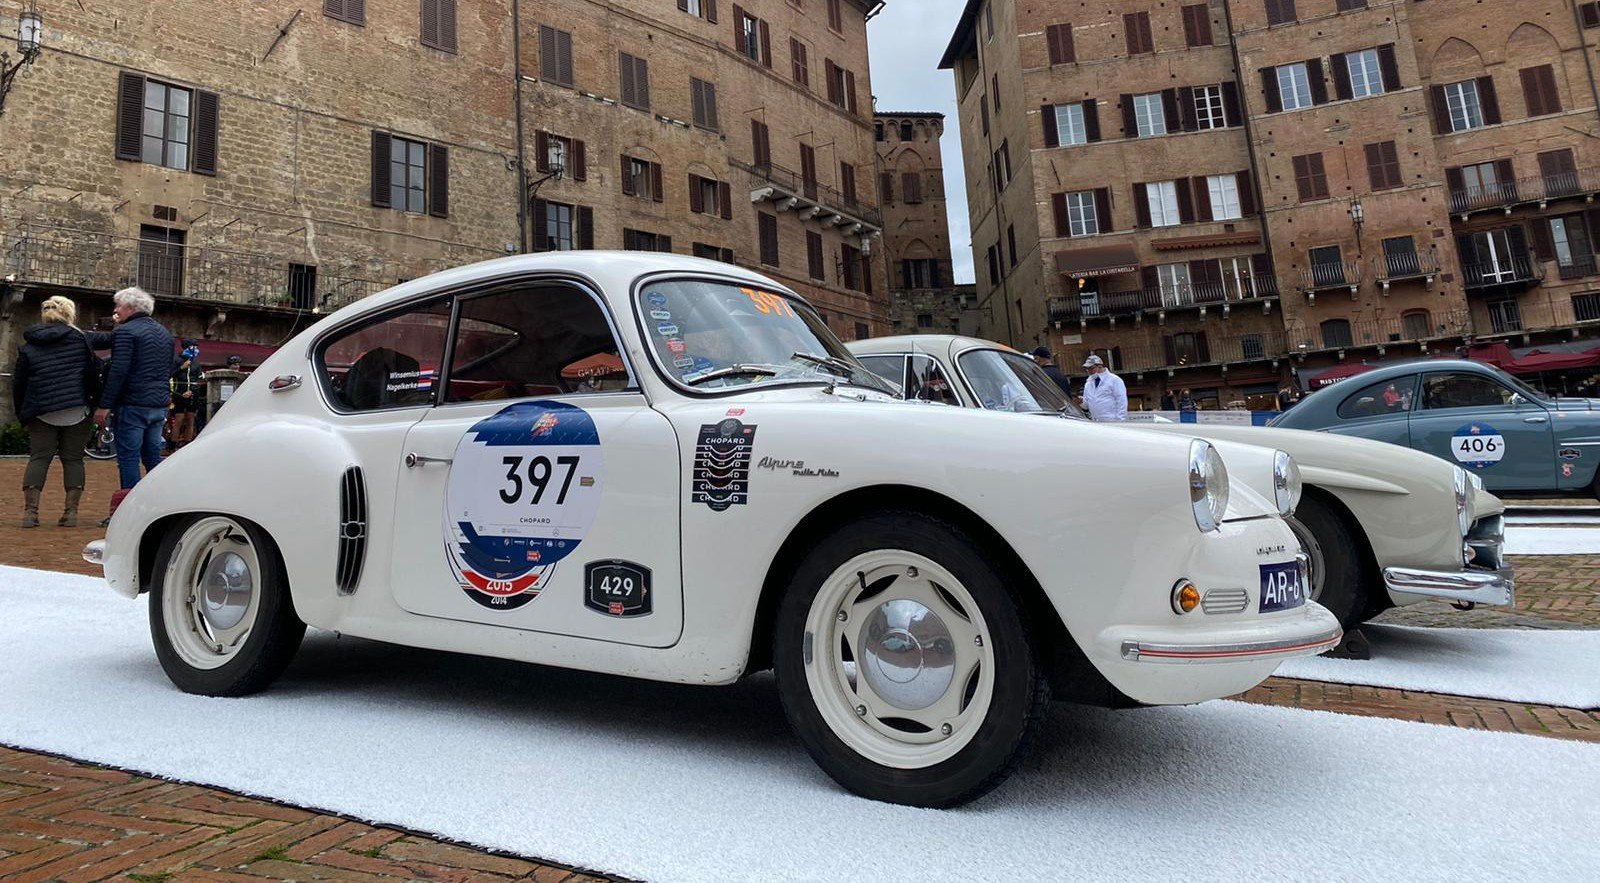 Renault alpine A106 Mille Miles (1957) at the Mille Miglia 2020